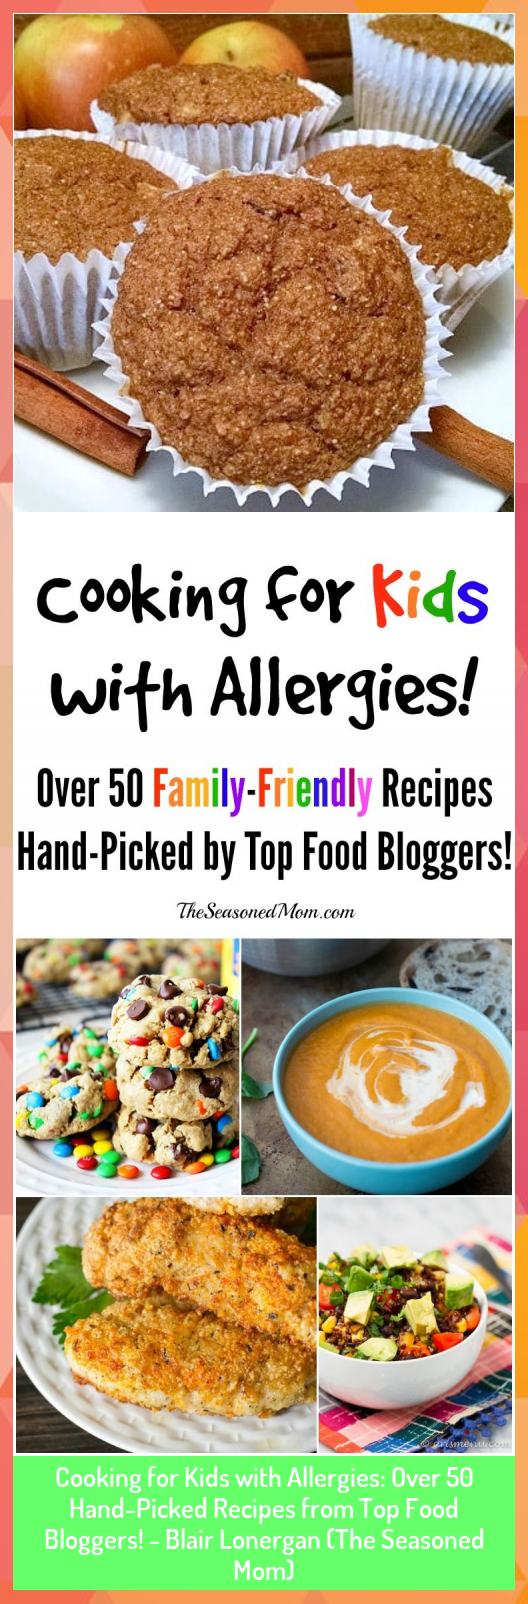 Cooking for Kids with Allergies: Over 50 Hand-Picked Recipes from Top Food Bloggers! - Blair Lonergan (The Seasoned Mom) #Allergies #Blair #Bloggers #Cooking #Food #HandPicked #Kids #Lonergan #Mom #Recipes #Seasoned #Top